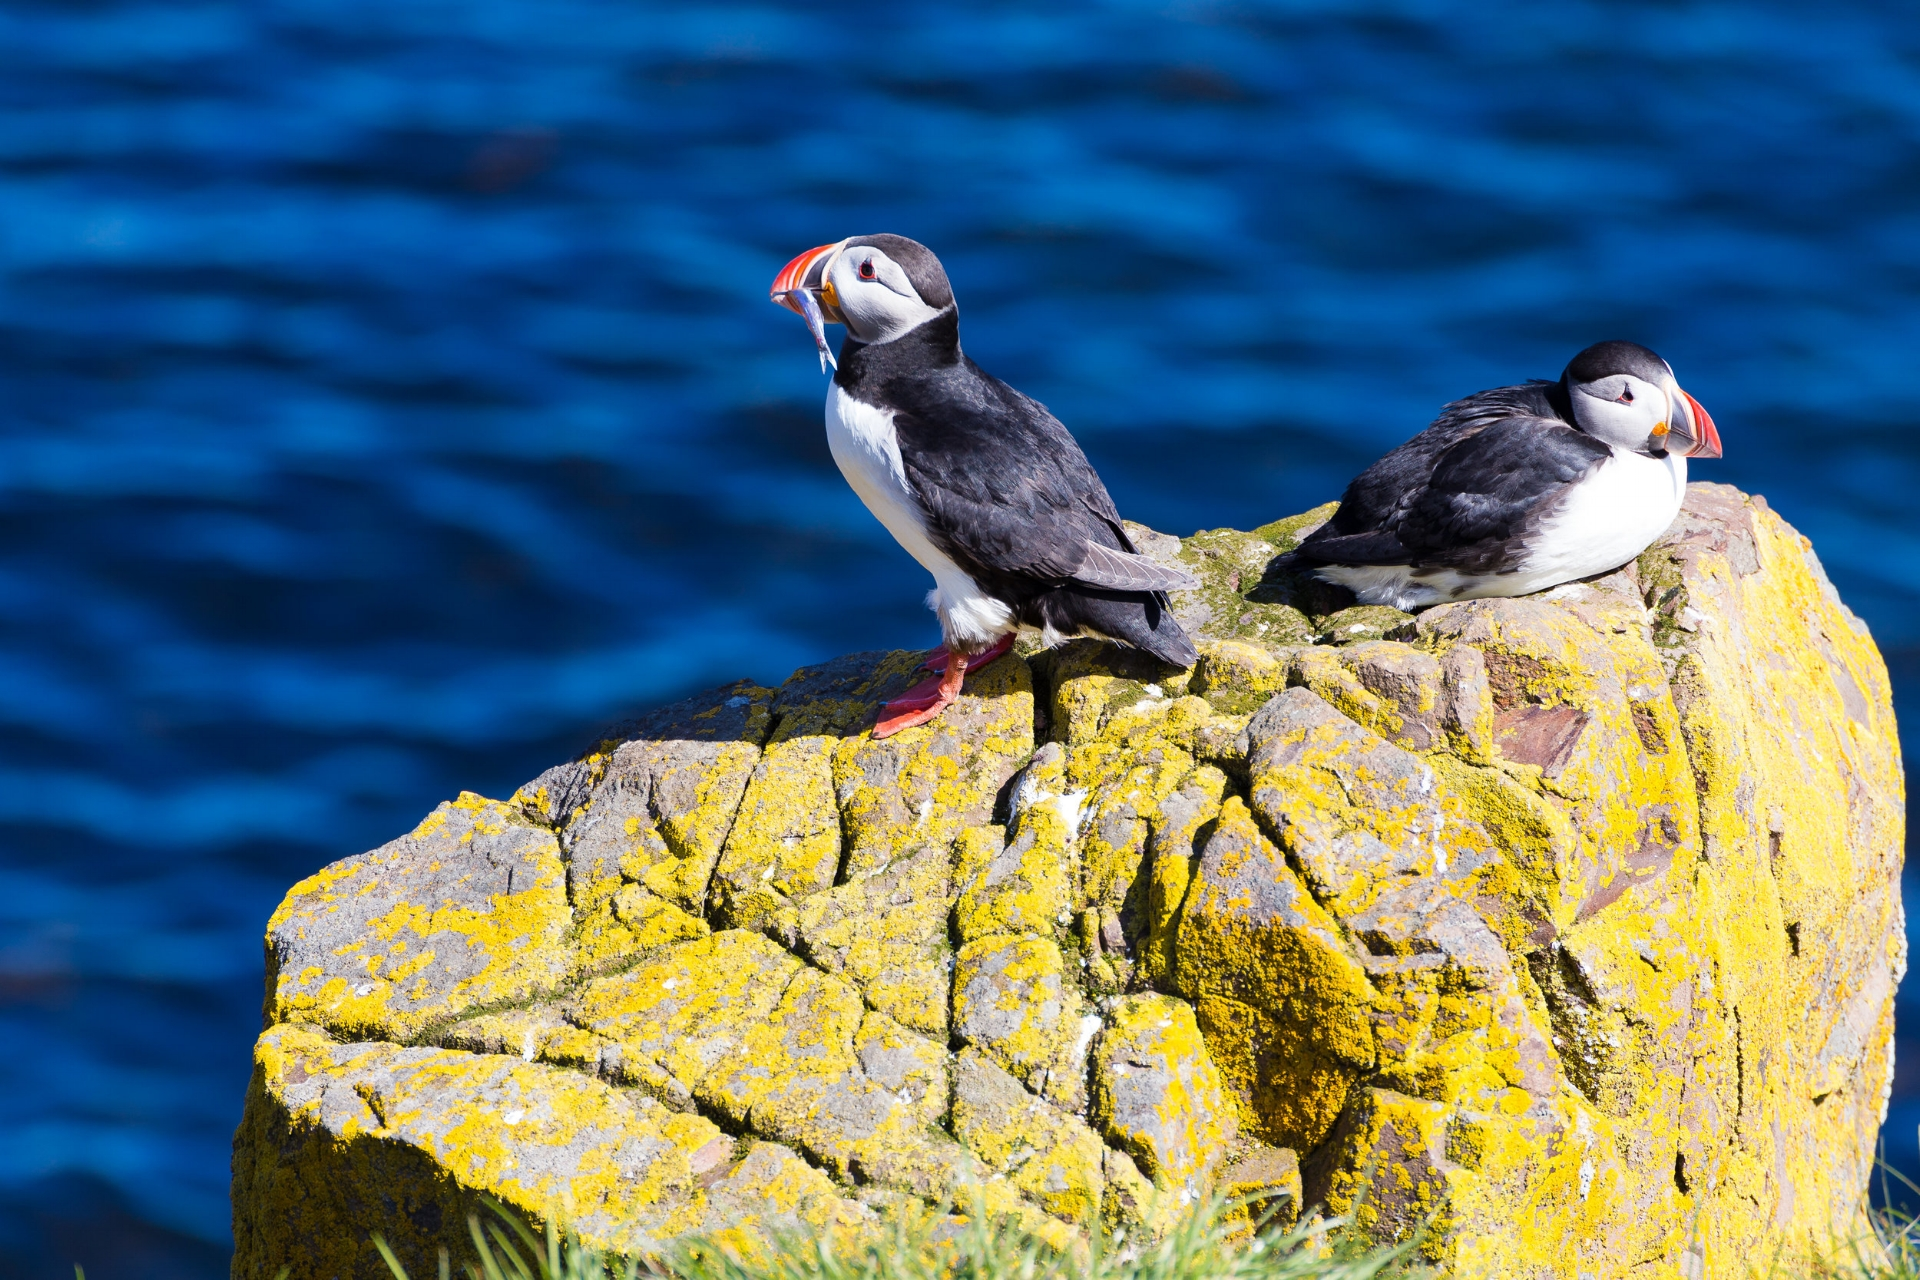 At Borgarfjörður-Eystri's harbour, there are hundreds of puffins sitting within an arm's length of the viewing platforms.